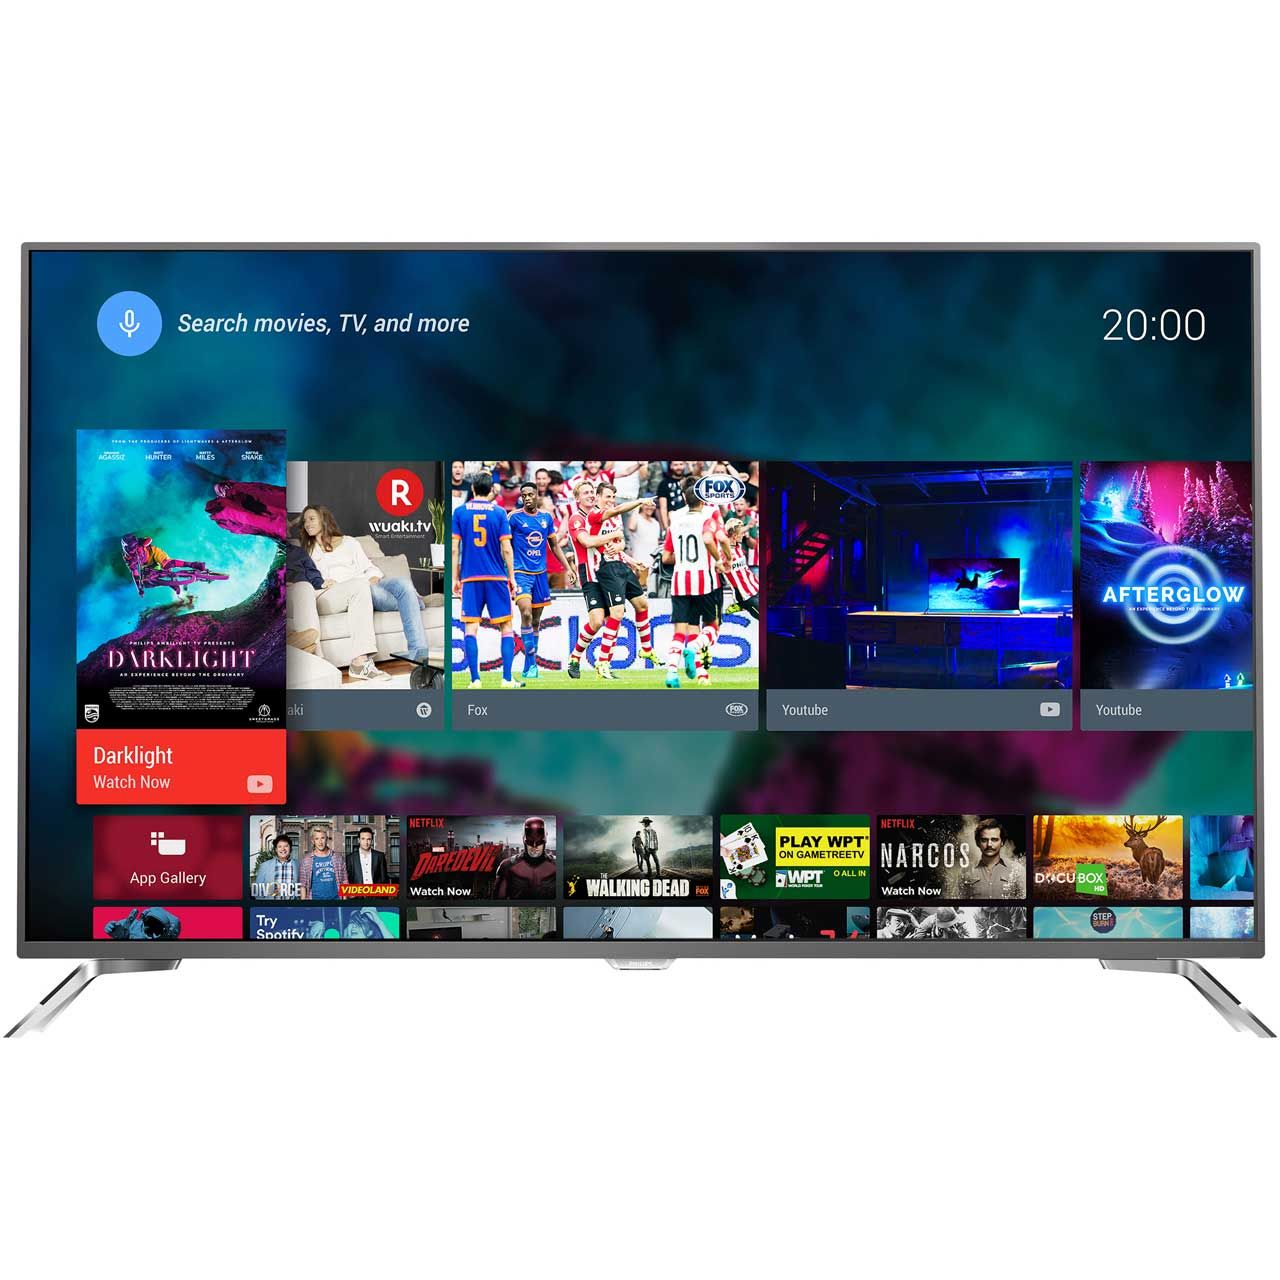 Philips Tv 65pus7101 65 Smart Ambilight 4k Ultra Hd Tv Review